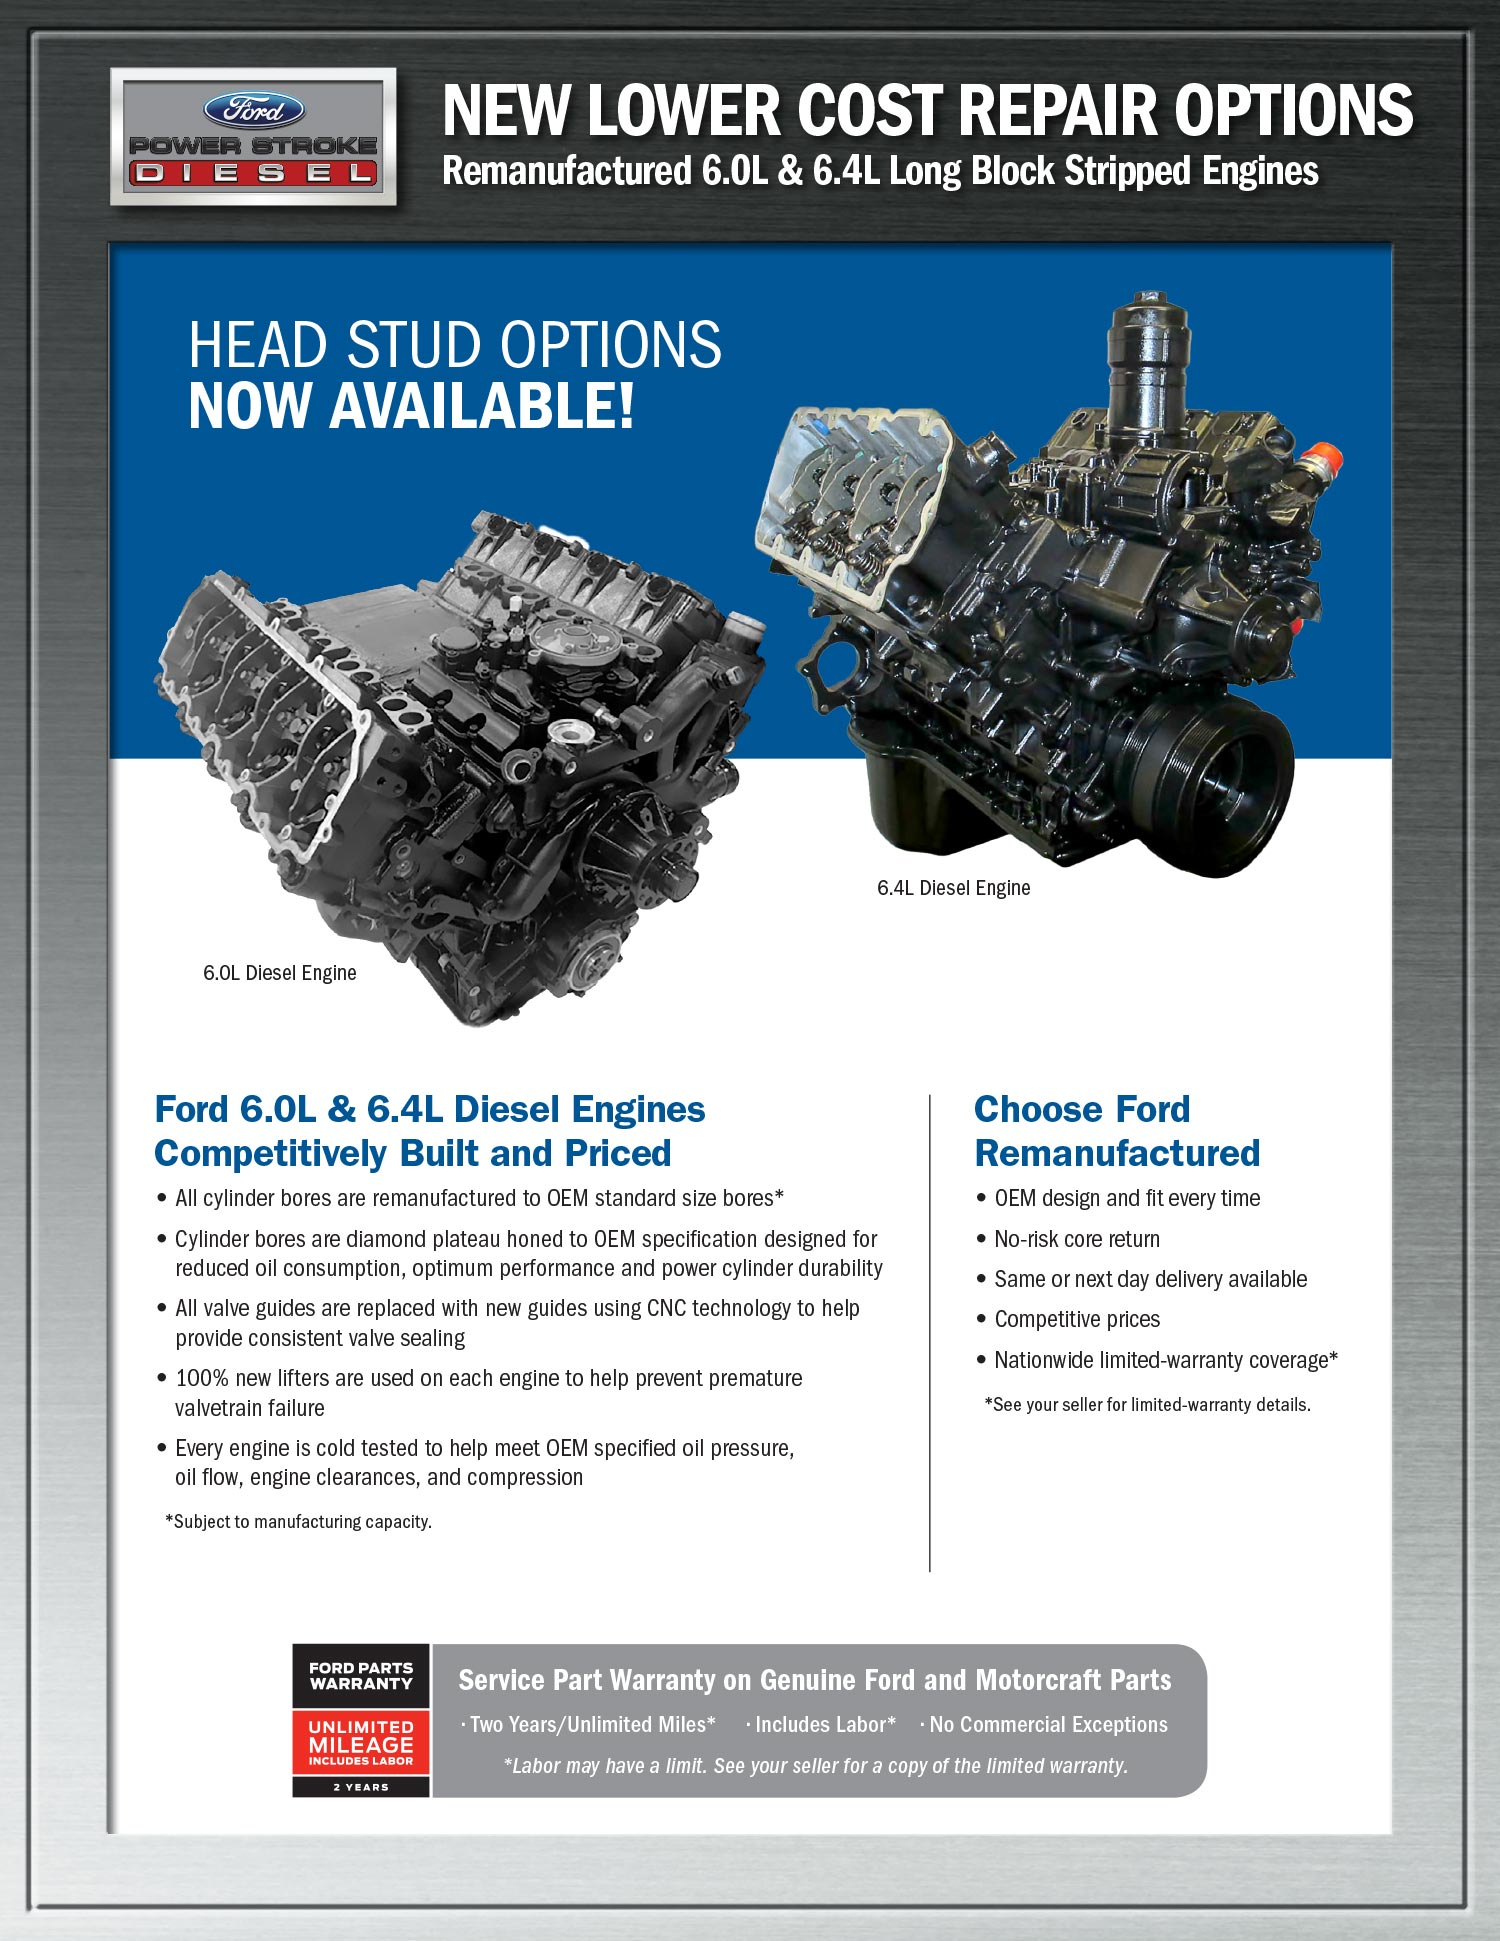 Lower Cost for Remanufactured Long Block Stripped Engines